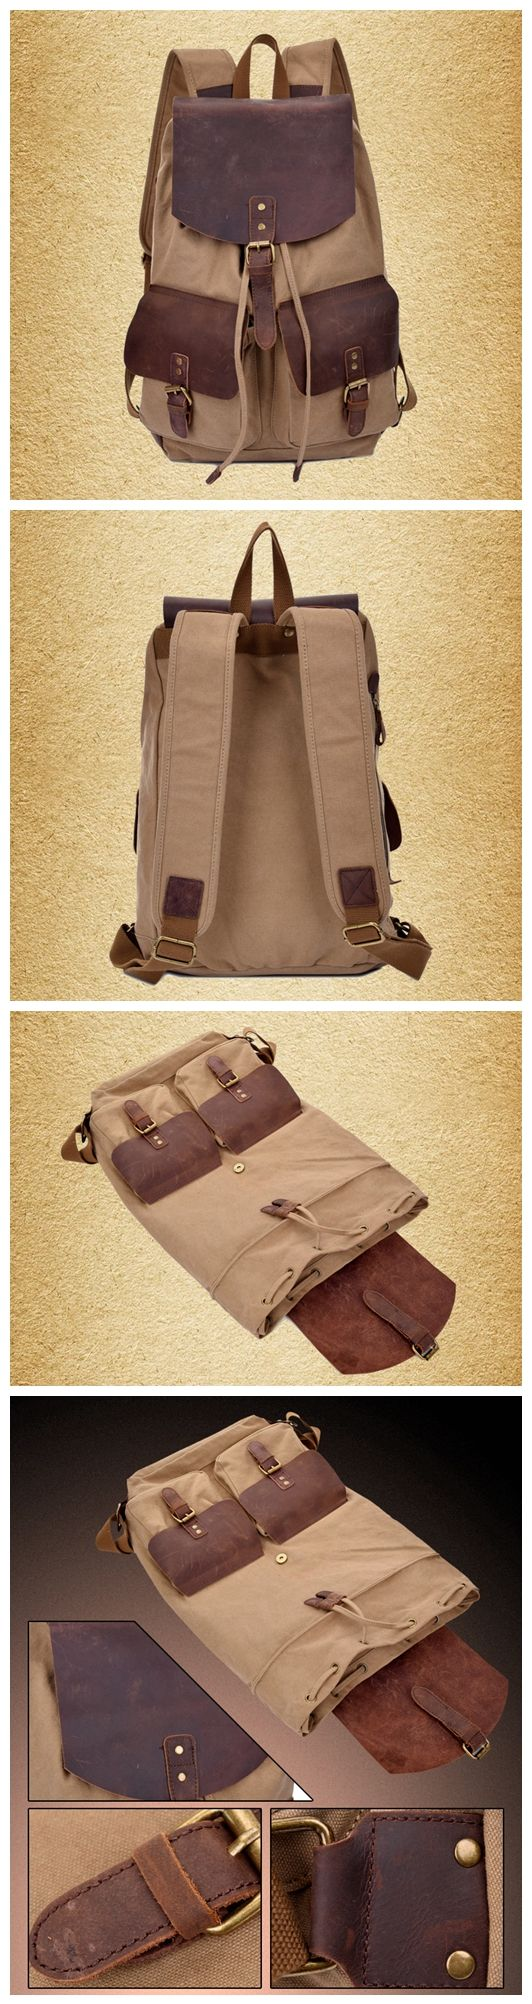 Moshi Hot Sale Canvas Leather Backpack, School Backpack, Waxed Canvas Backpack